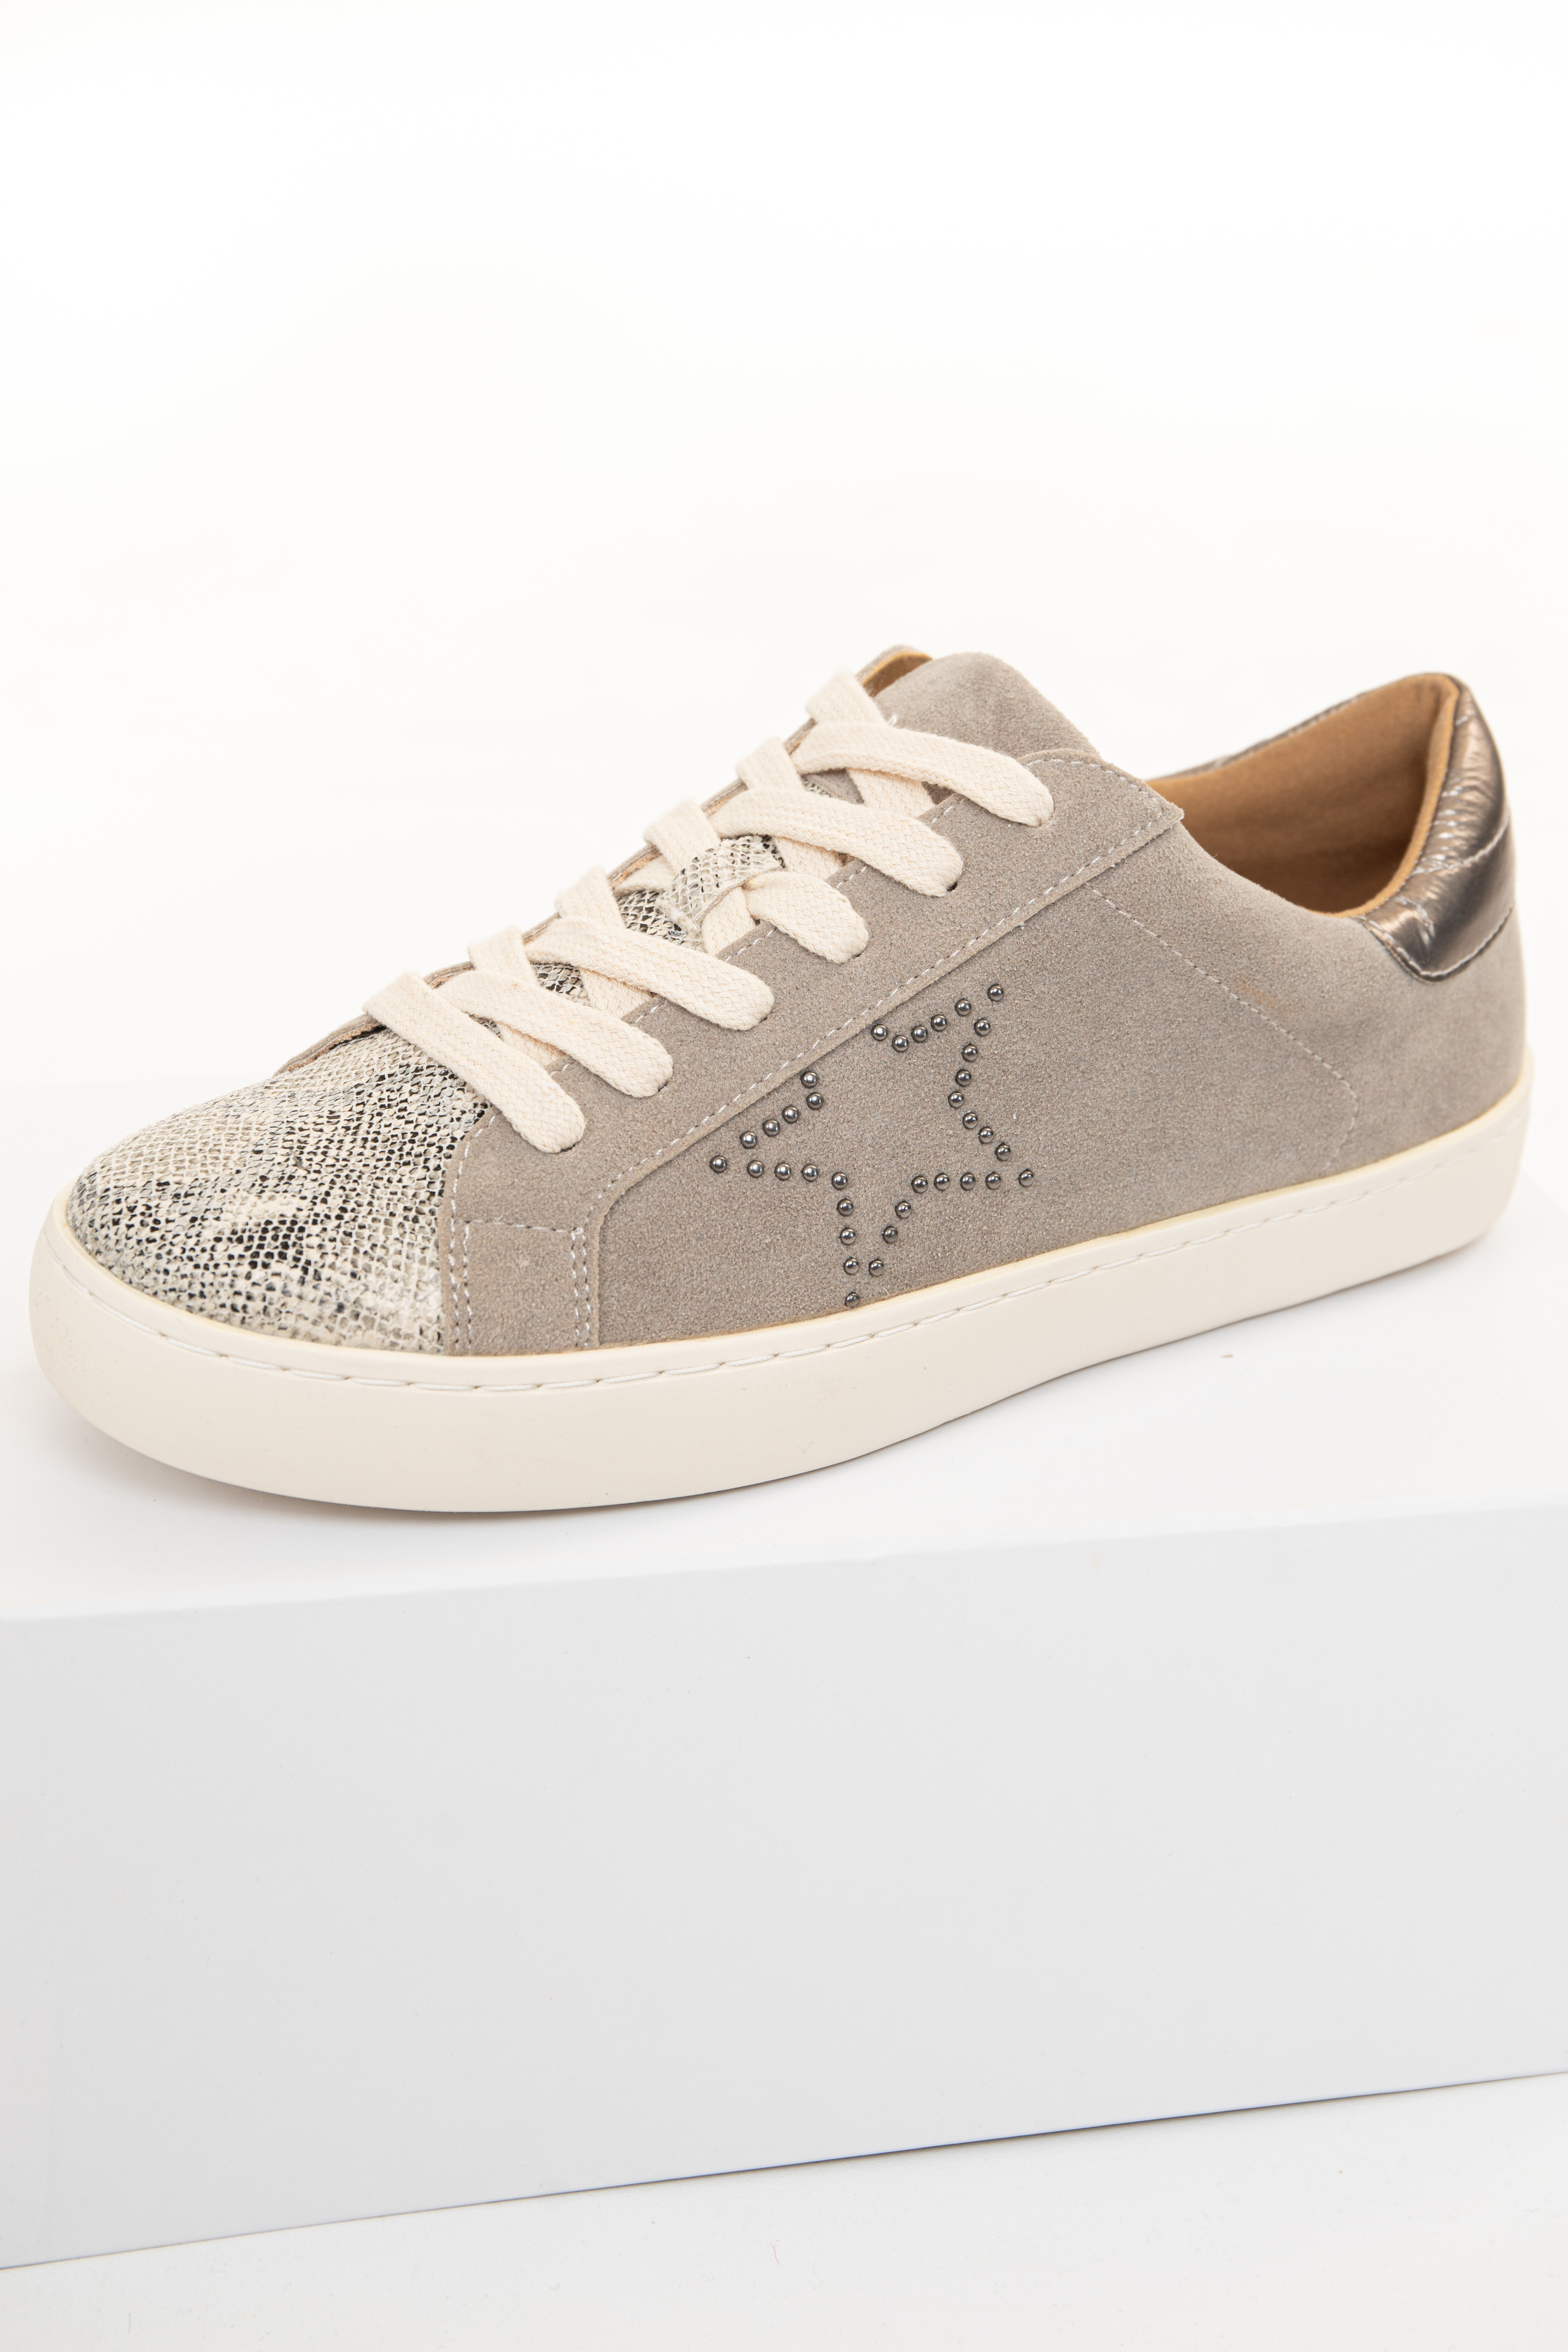 Taupe Faux Suede and Snakeskin Print Lace Up Sneakers